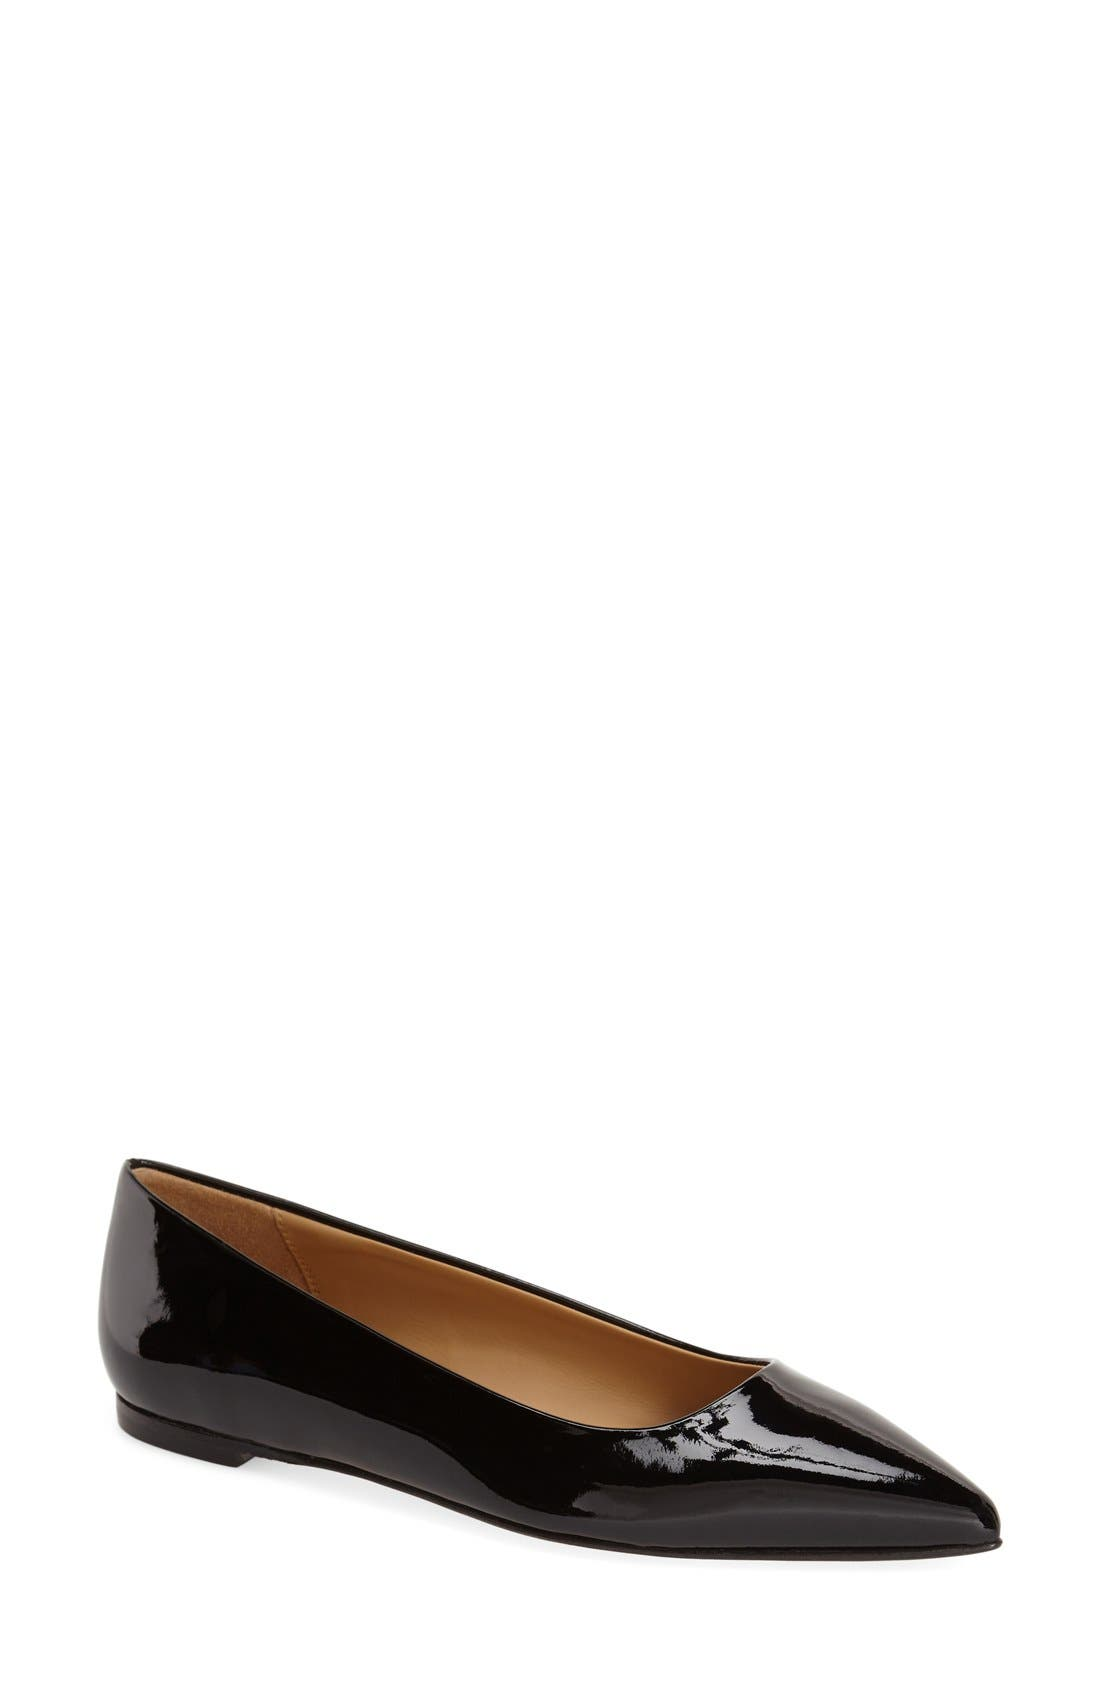 Australia Collection 'Linda' Pointy Toe Flat, Main, color, 001